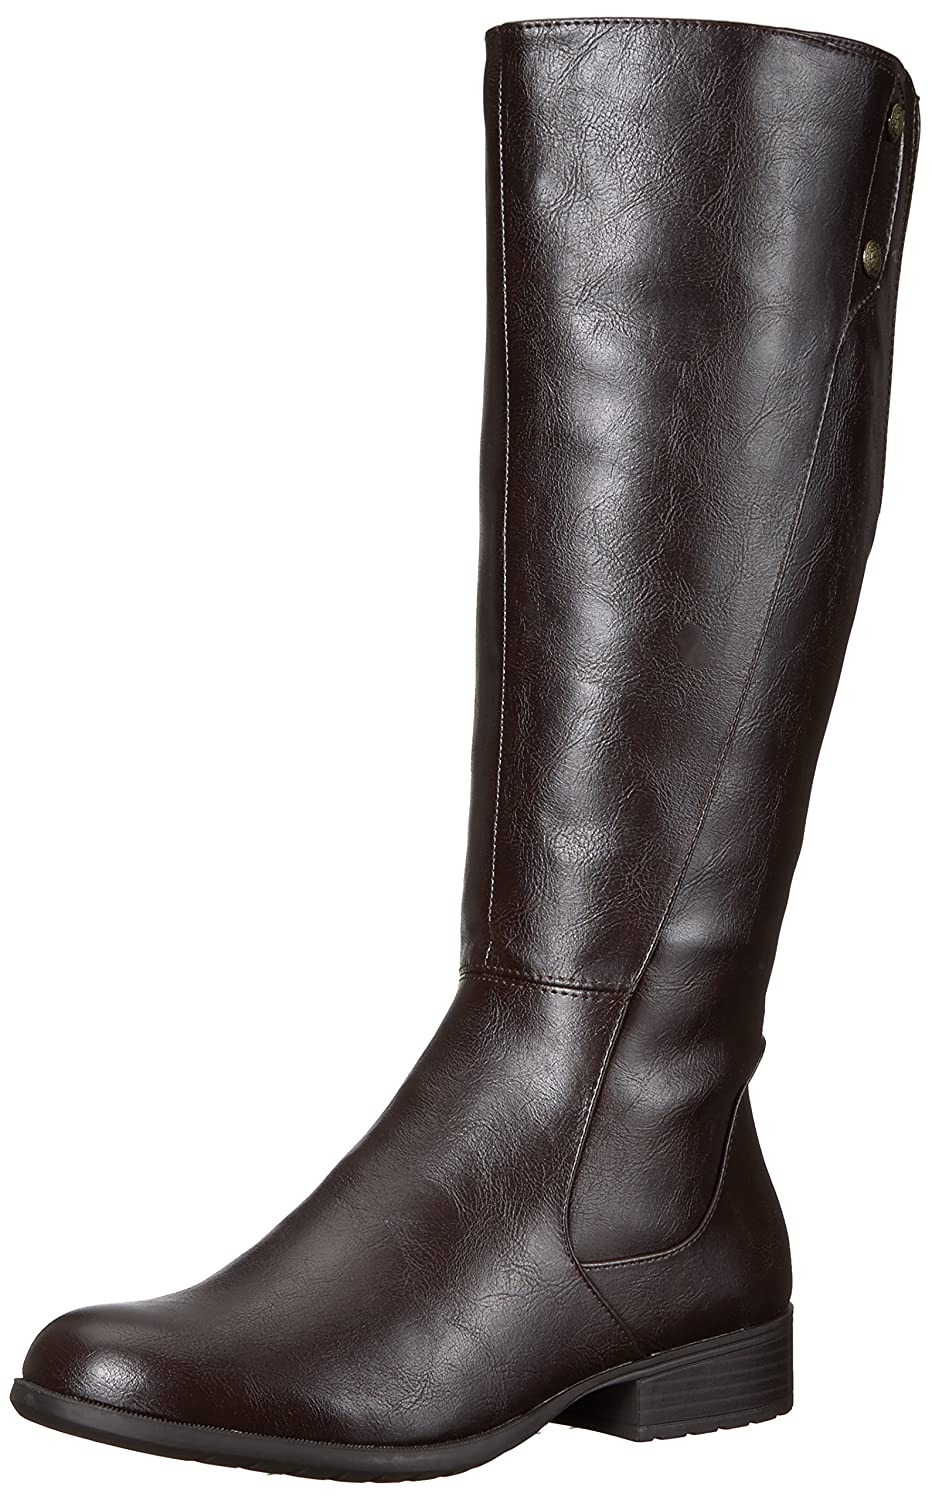 LifeStride Women's Xripley Riding Boot B072K7M438 9.5 W US|Dark Brown